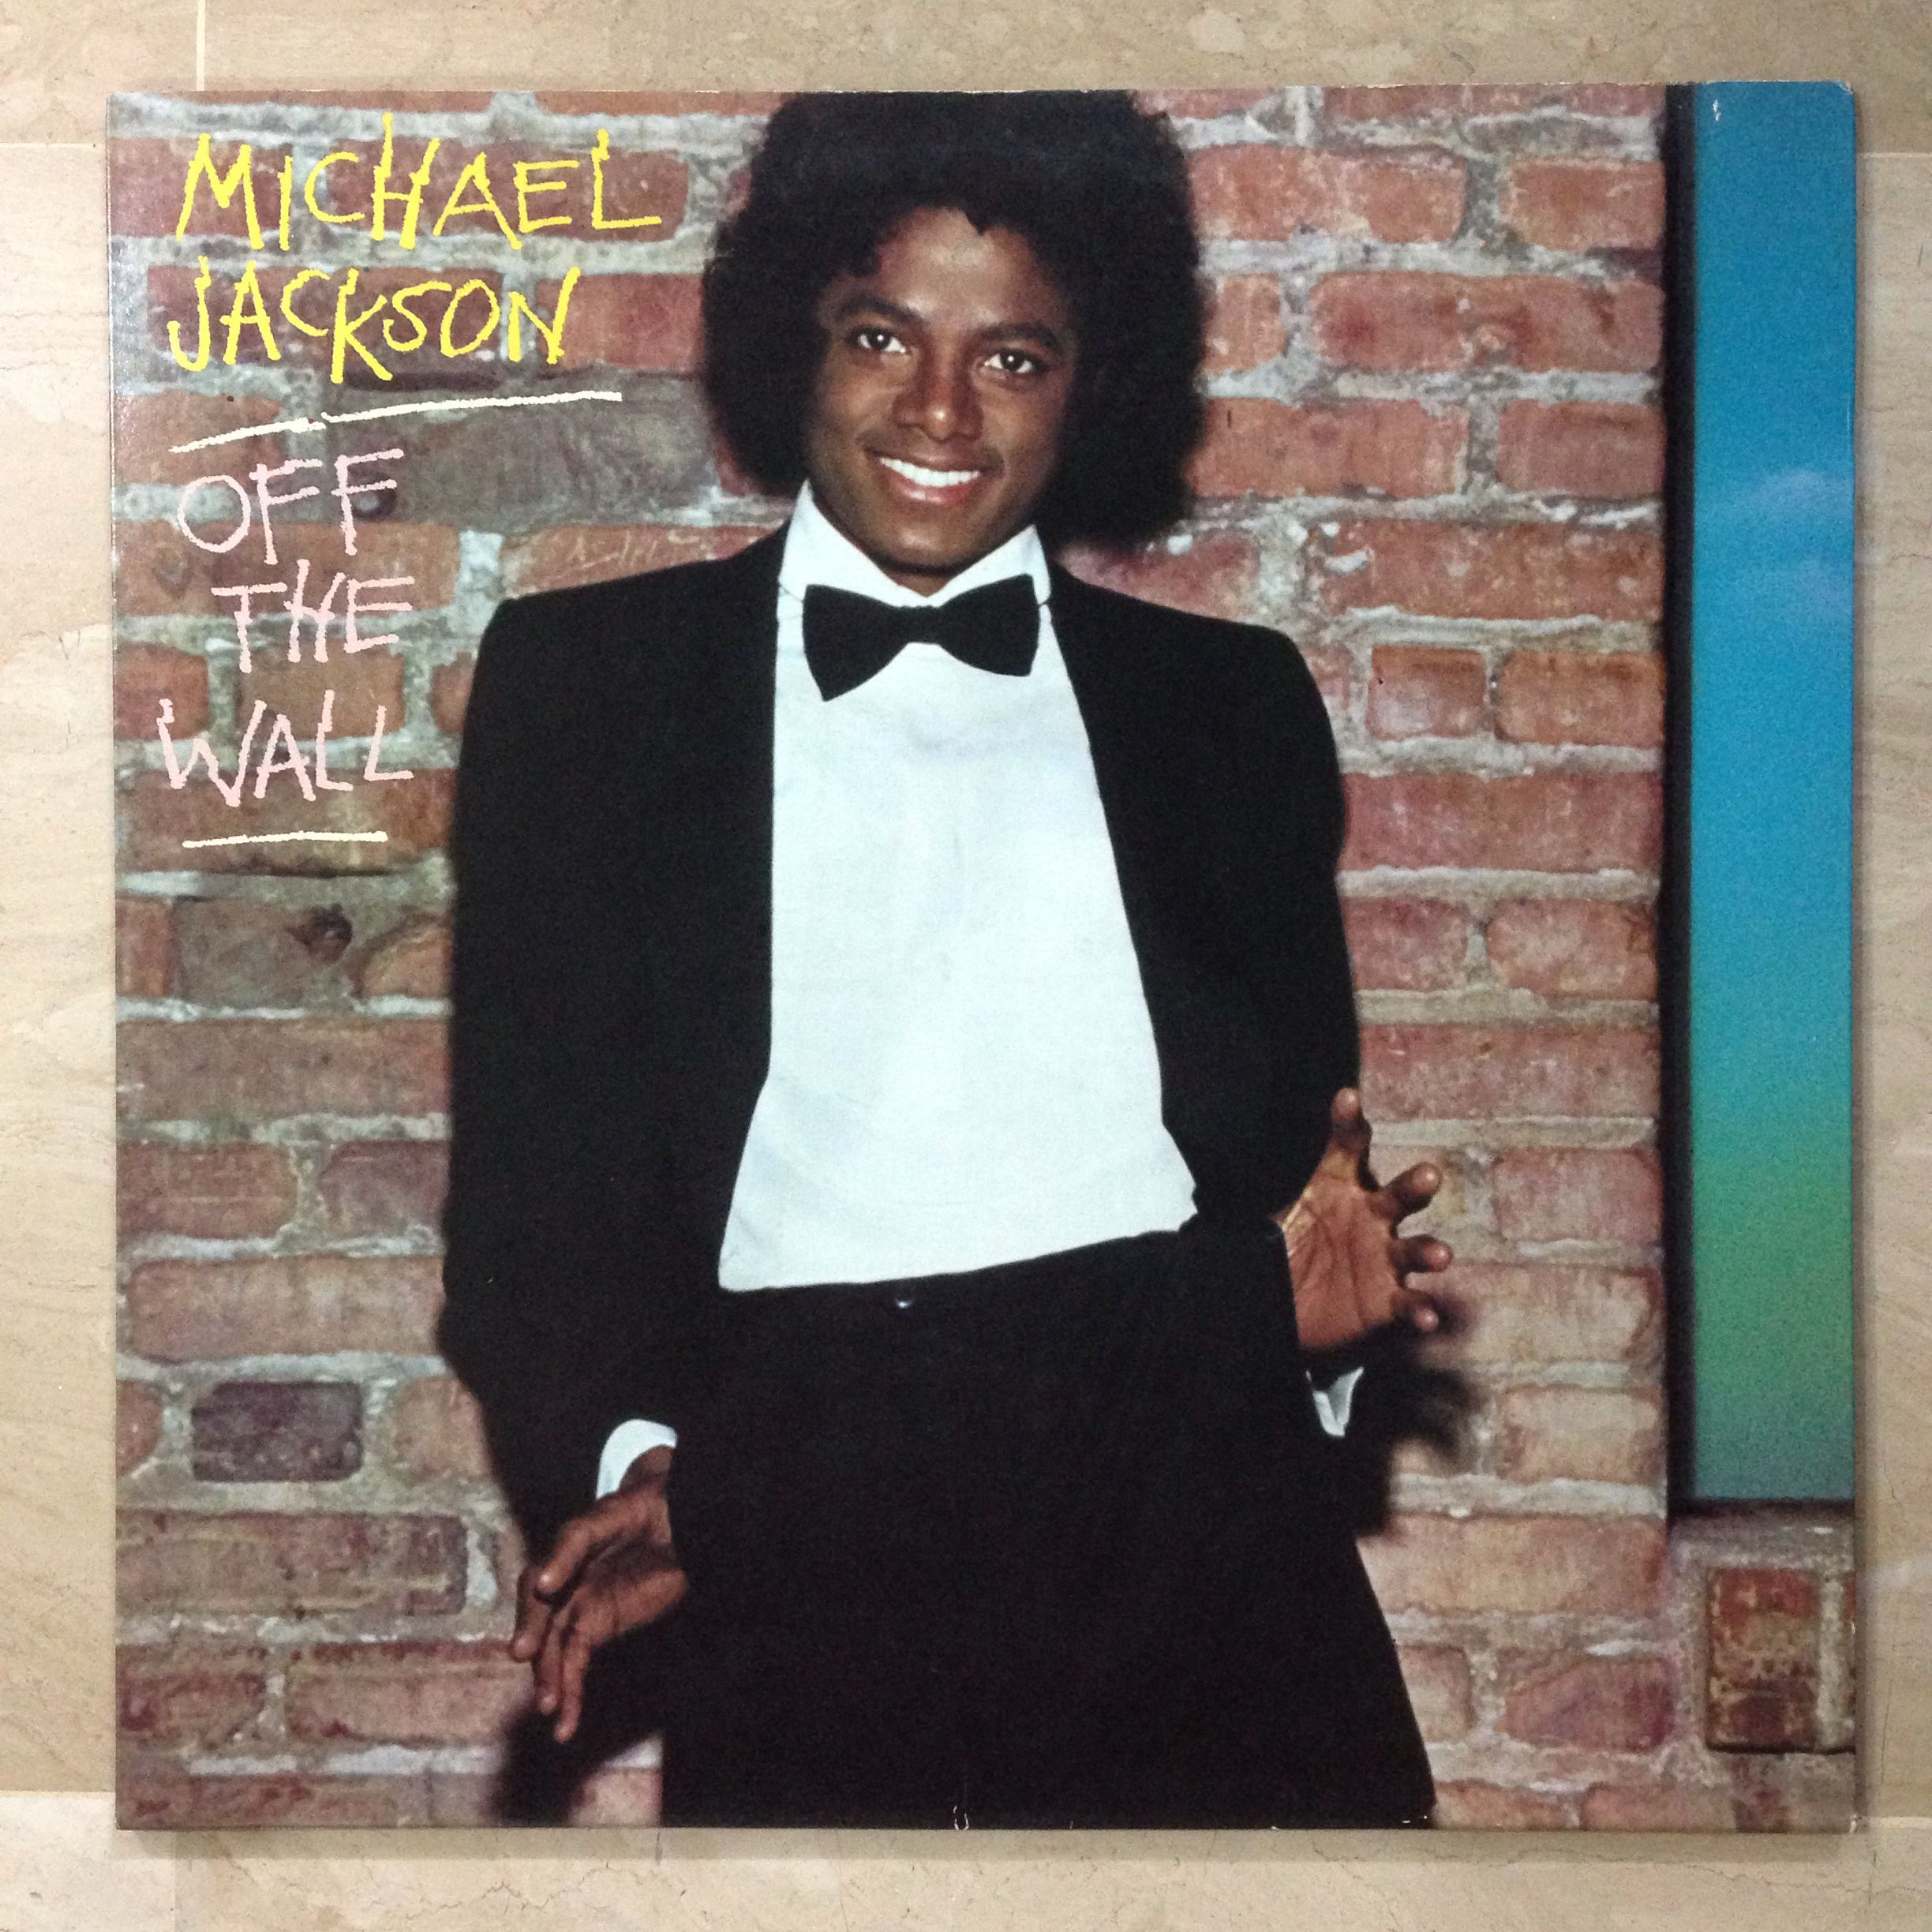 michael jackson off the wall lp 1979 front view with on off the wall id=31259